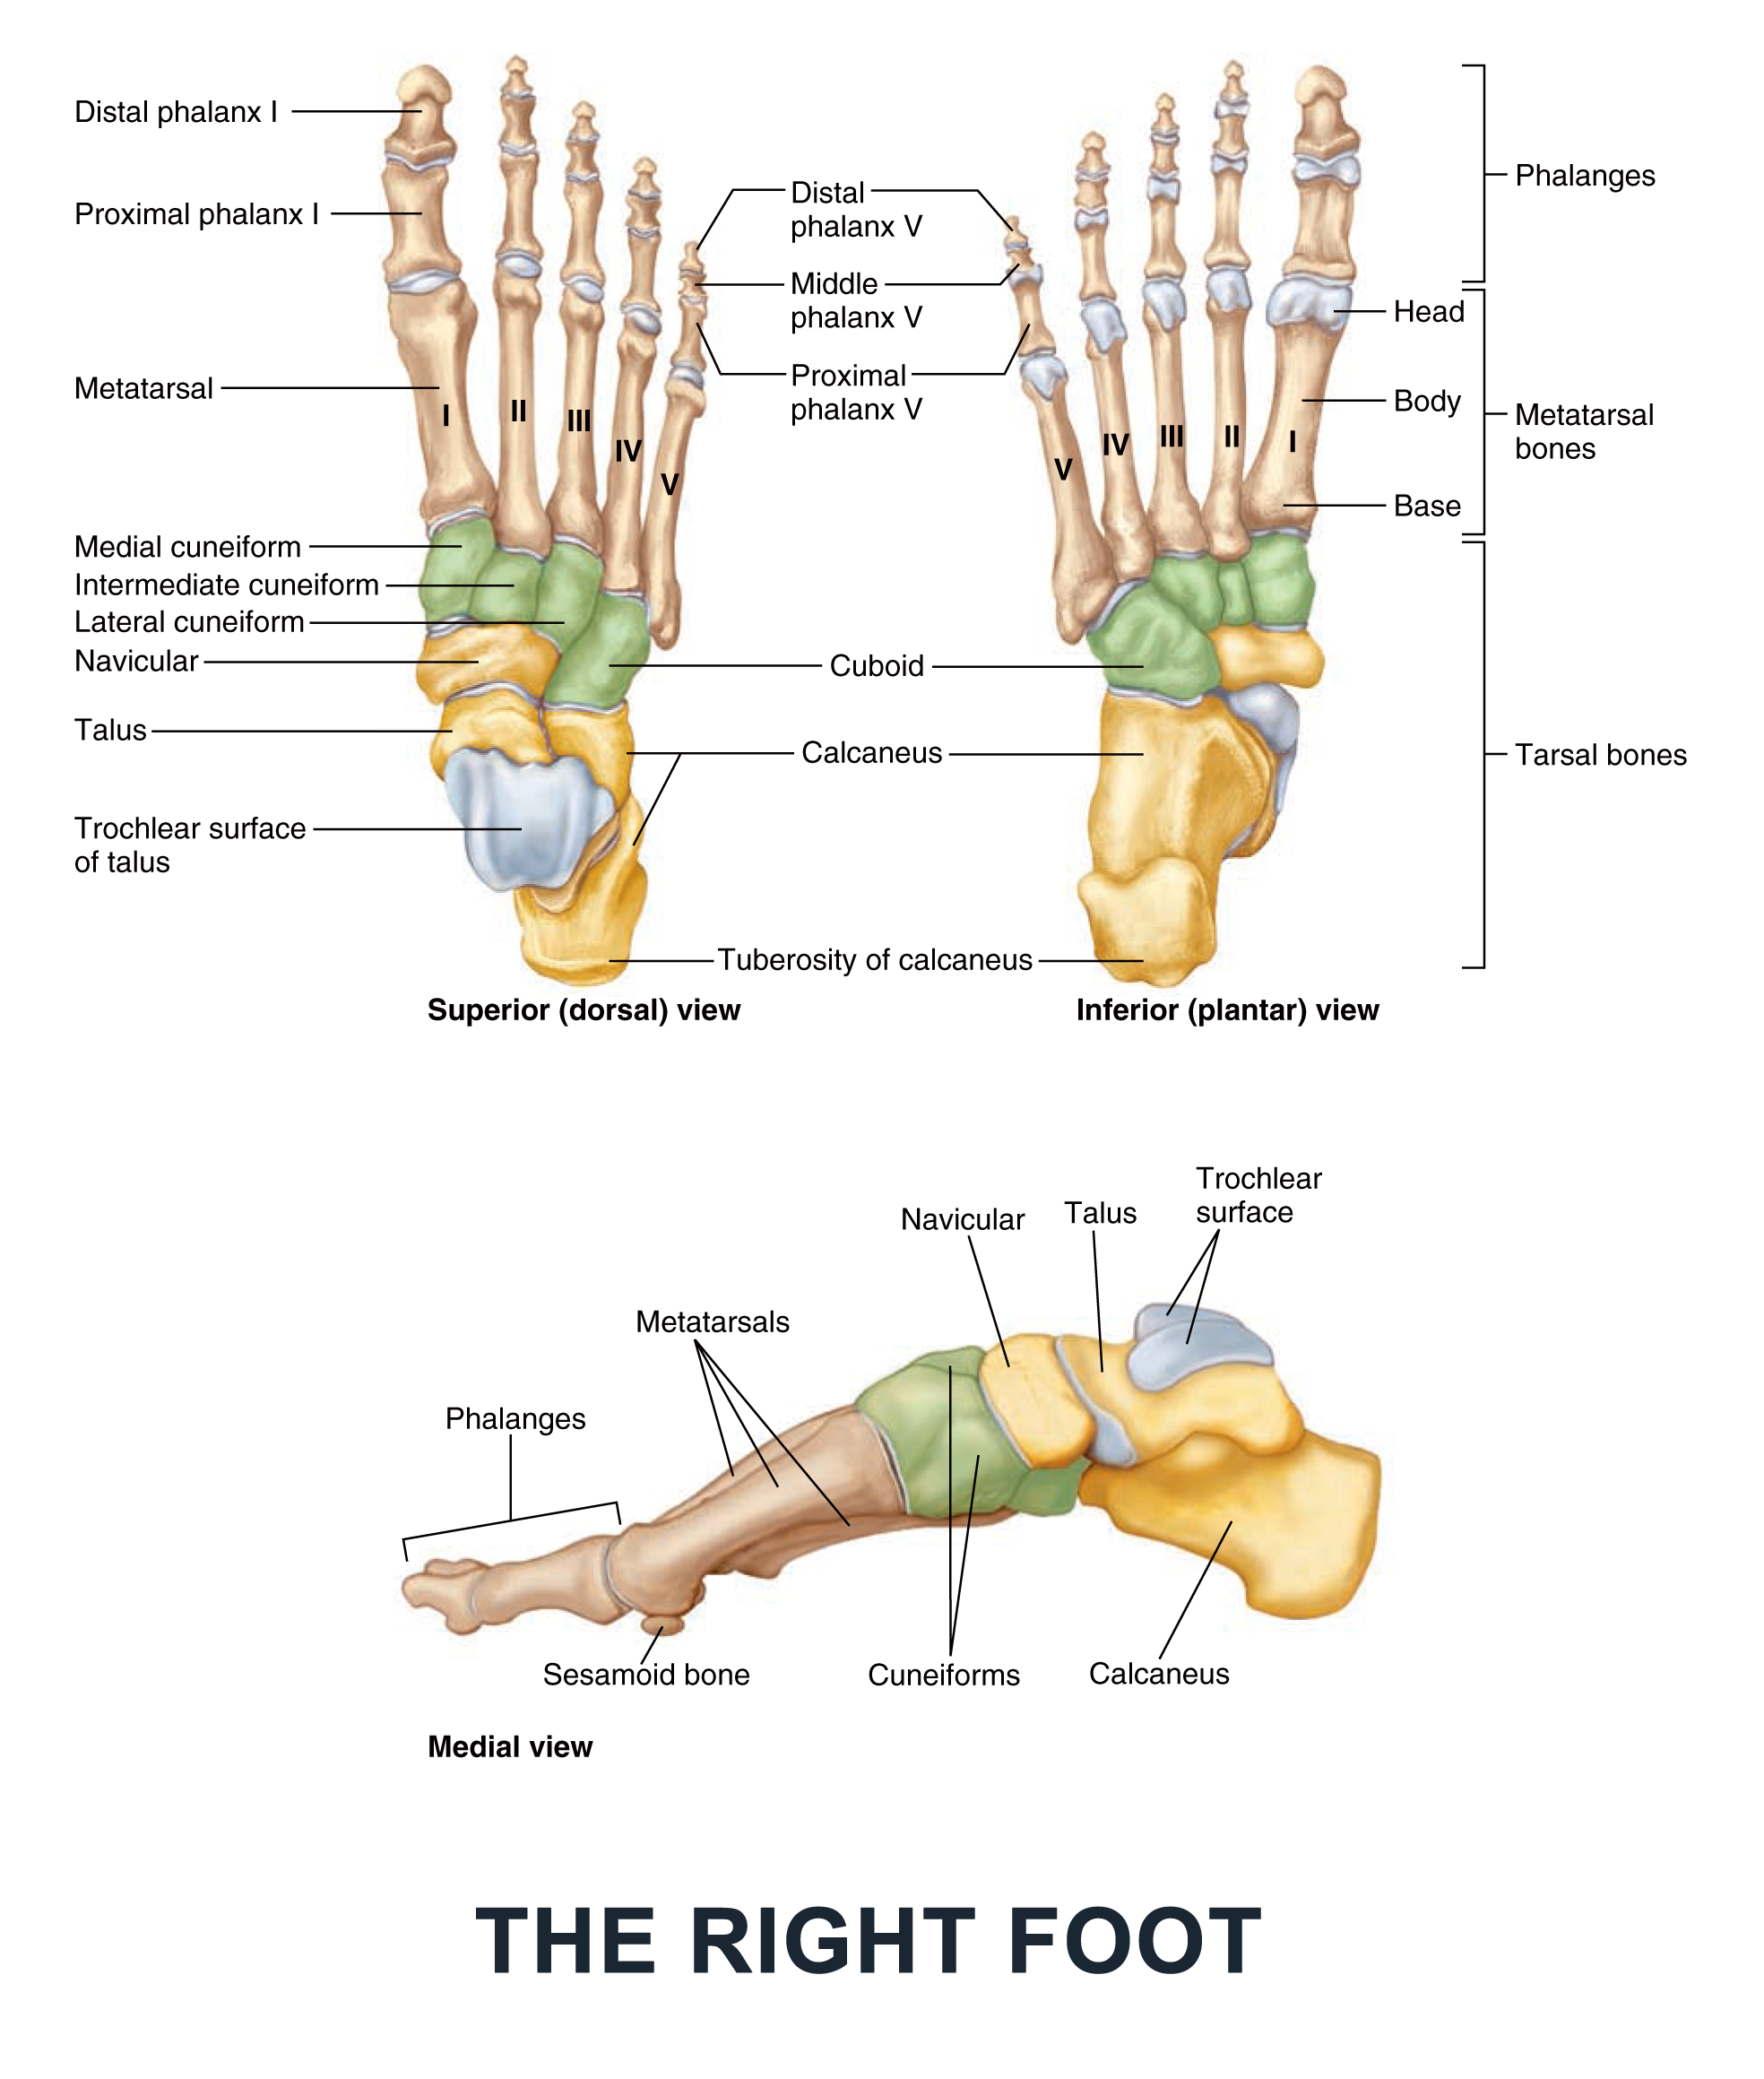 The Right Foot - #anatomy images illustrations #anatomy images ...